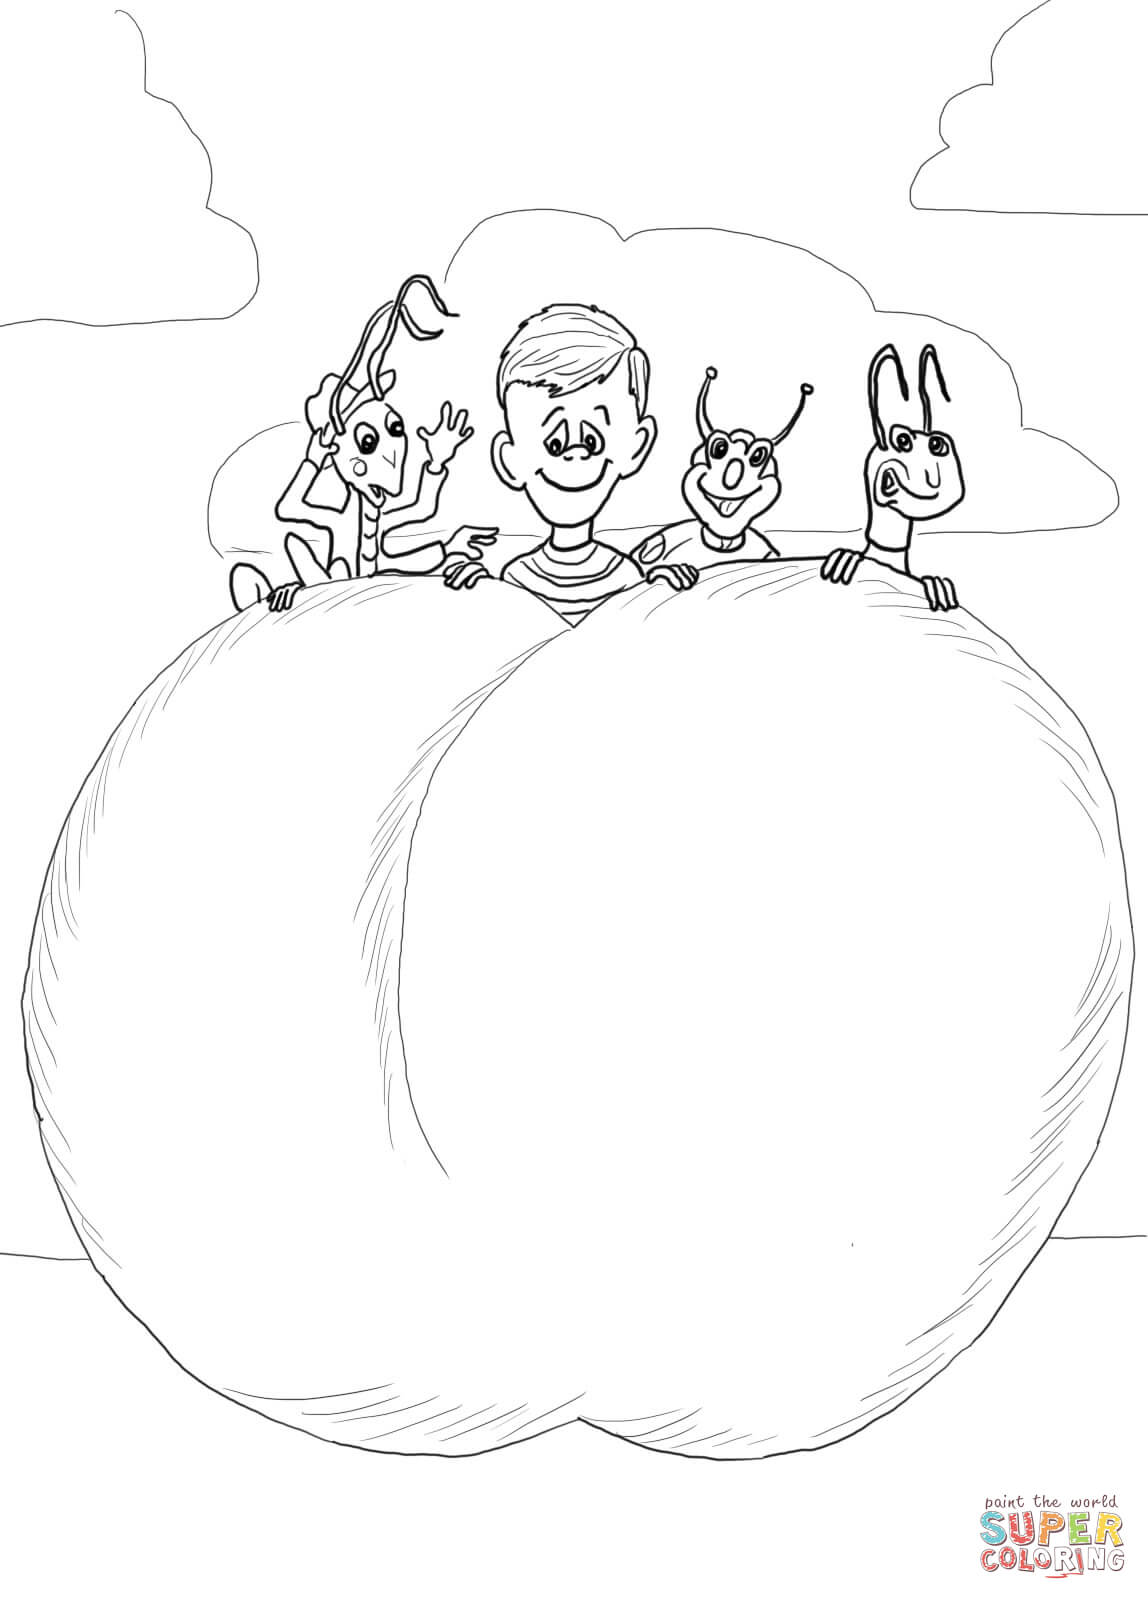 james and the giant peach coloring pages baby peach coloring pages at getdrawings free download pages the peach coloring giant james and